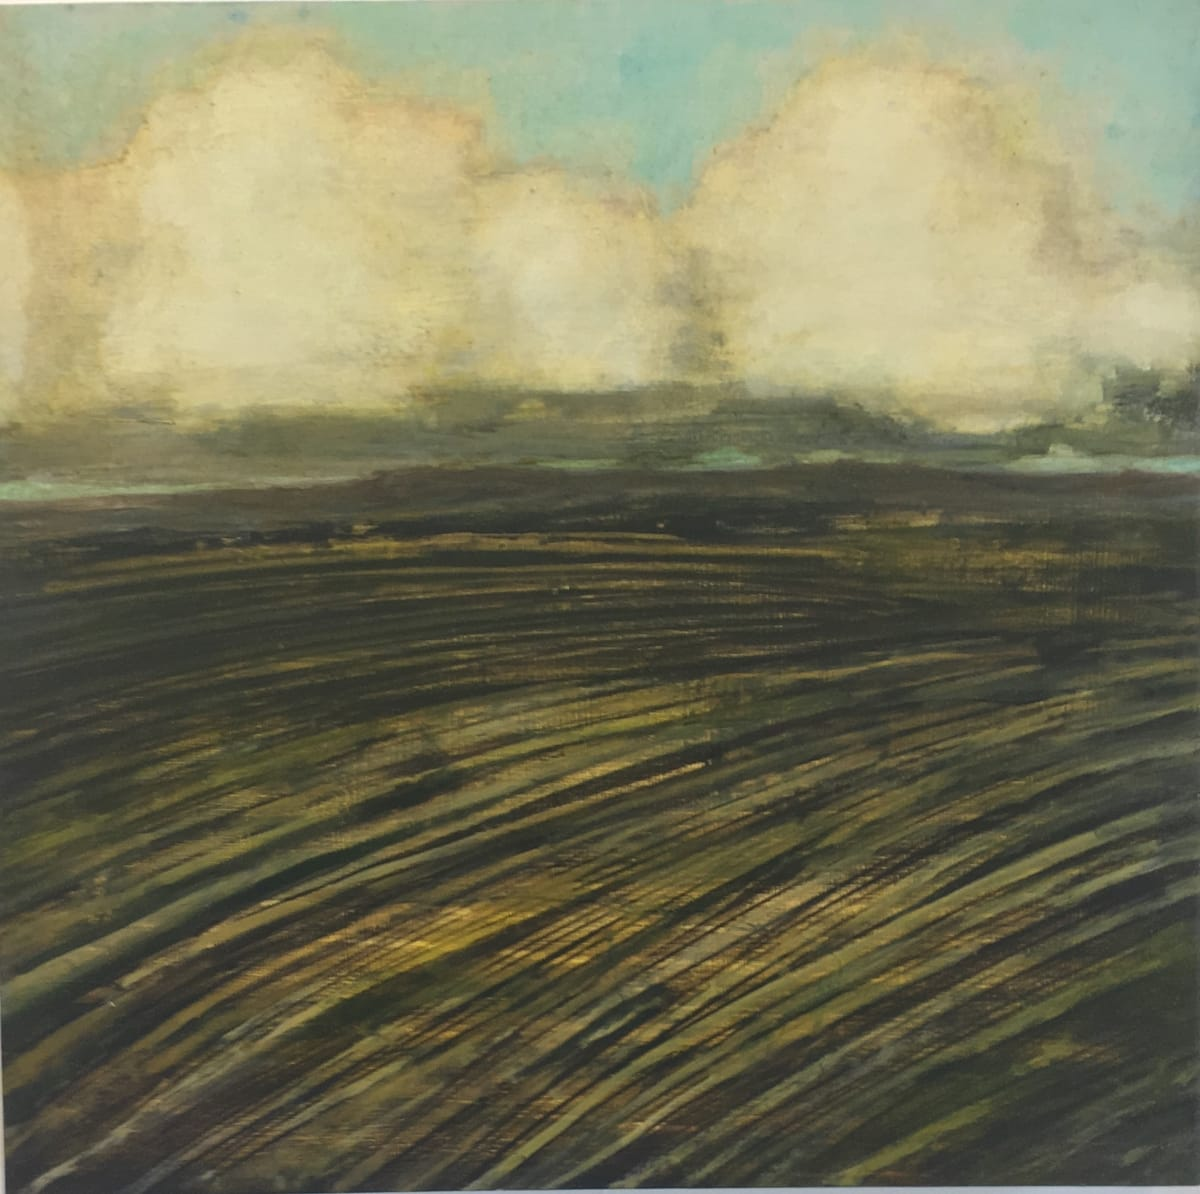 David Konigsberg, New Field, 2019